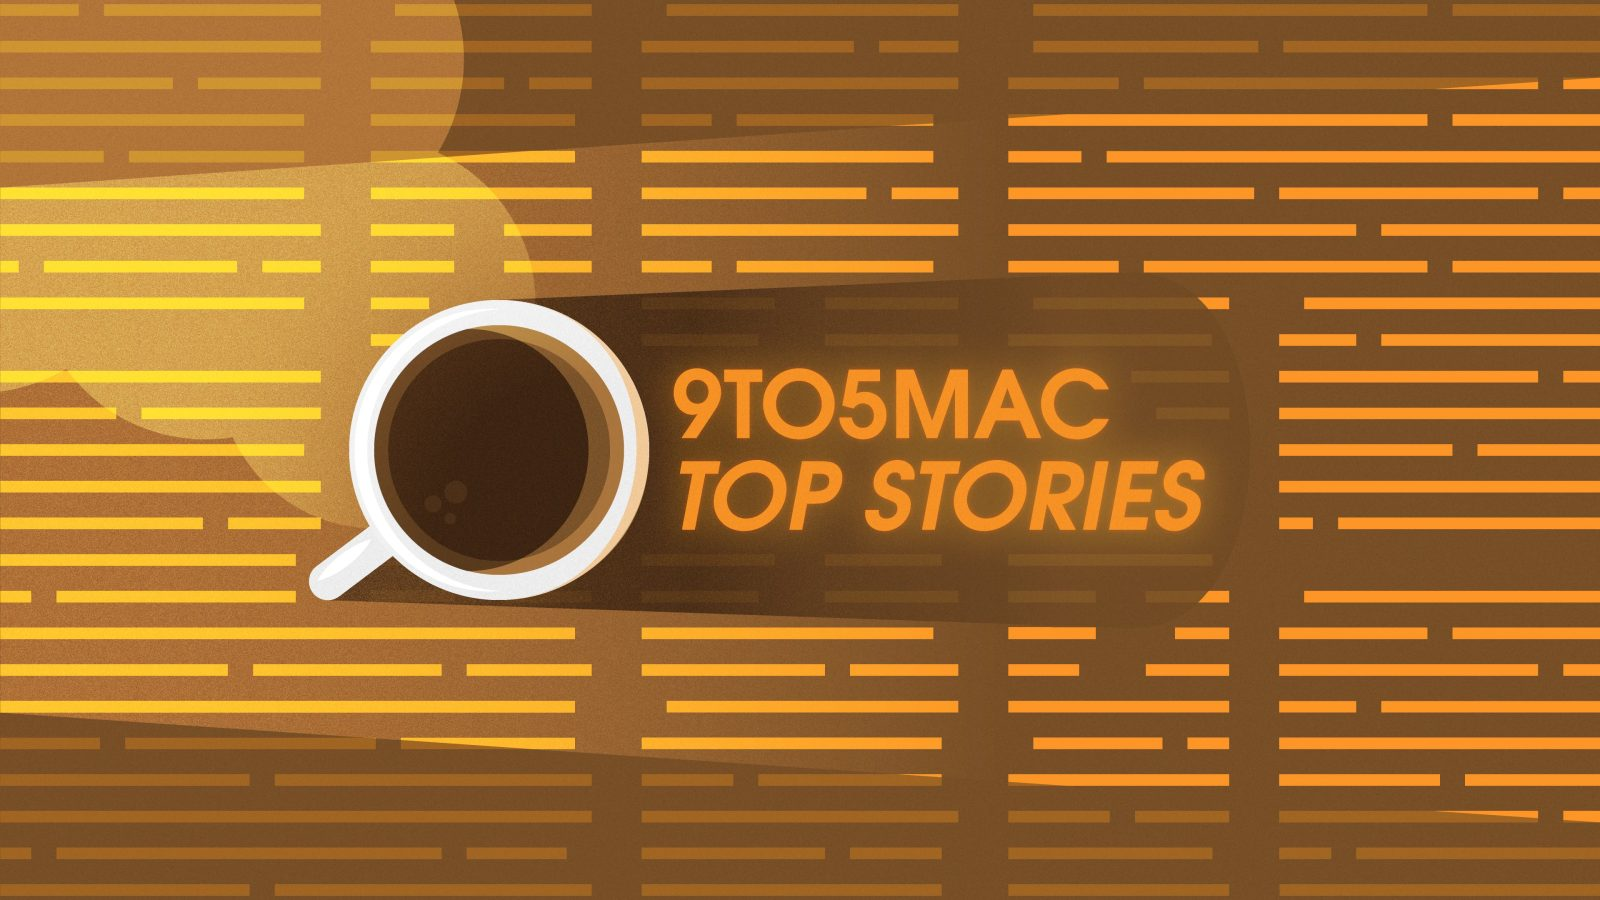 This week's top stories: iOS 13.2.2 bug fixes, iOS 13.3 beta testing, Adobe MAX, more